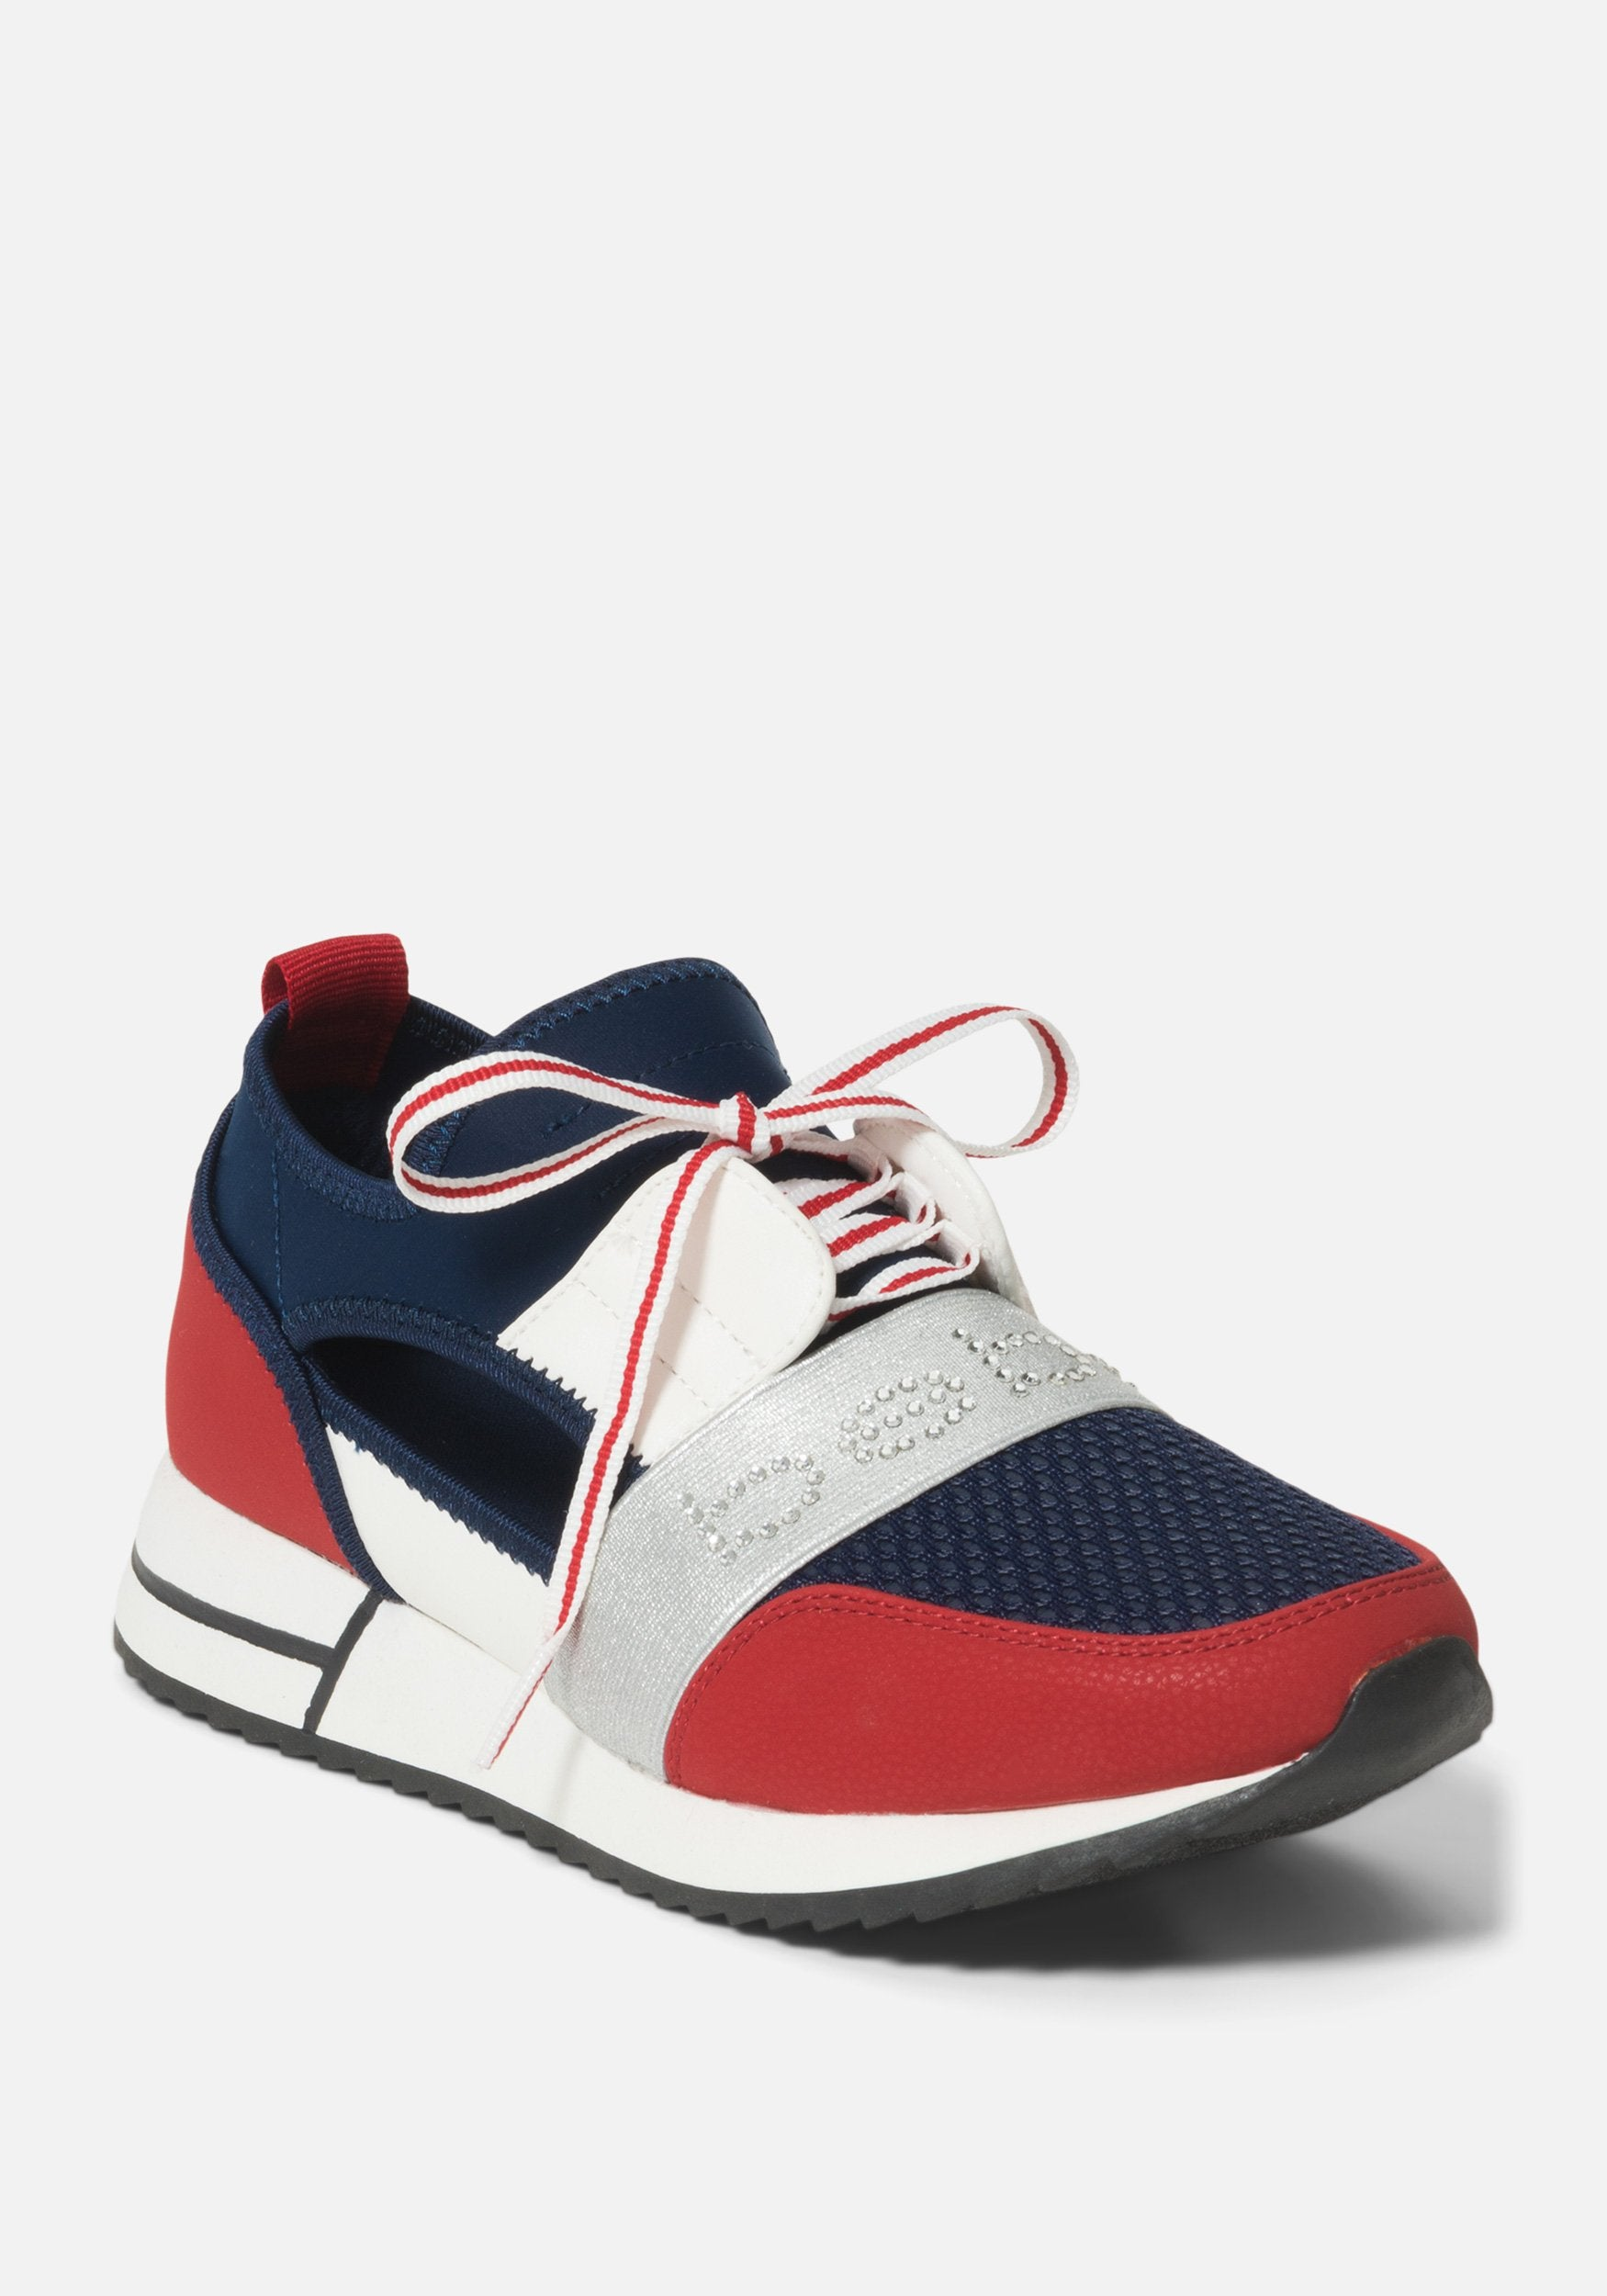 Bebe Women's Brienna Athletic Sneakers, Size 6 in Navy Blue/Red Synthetic